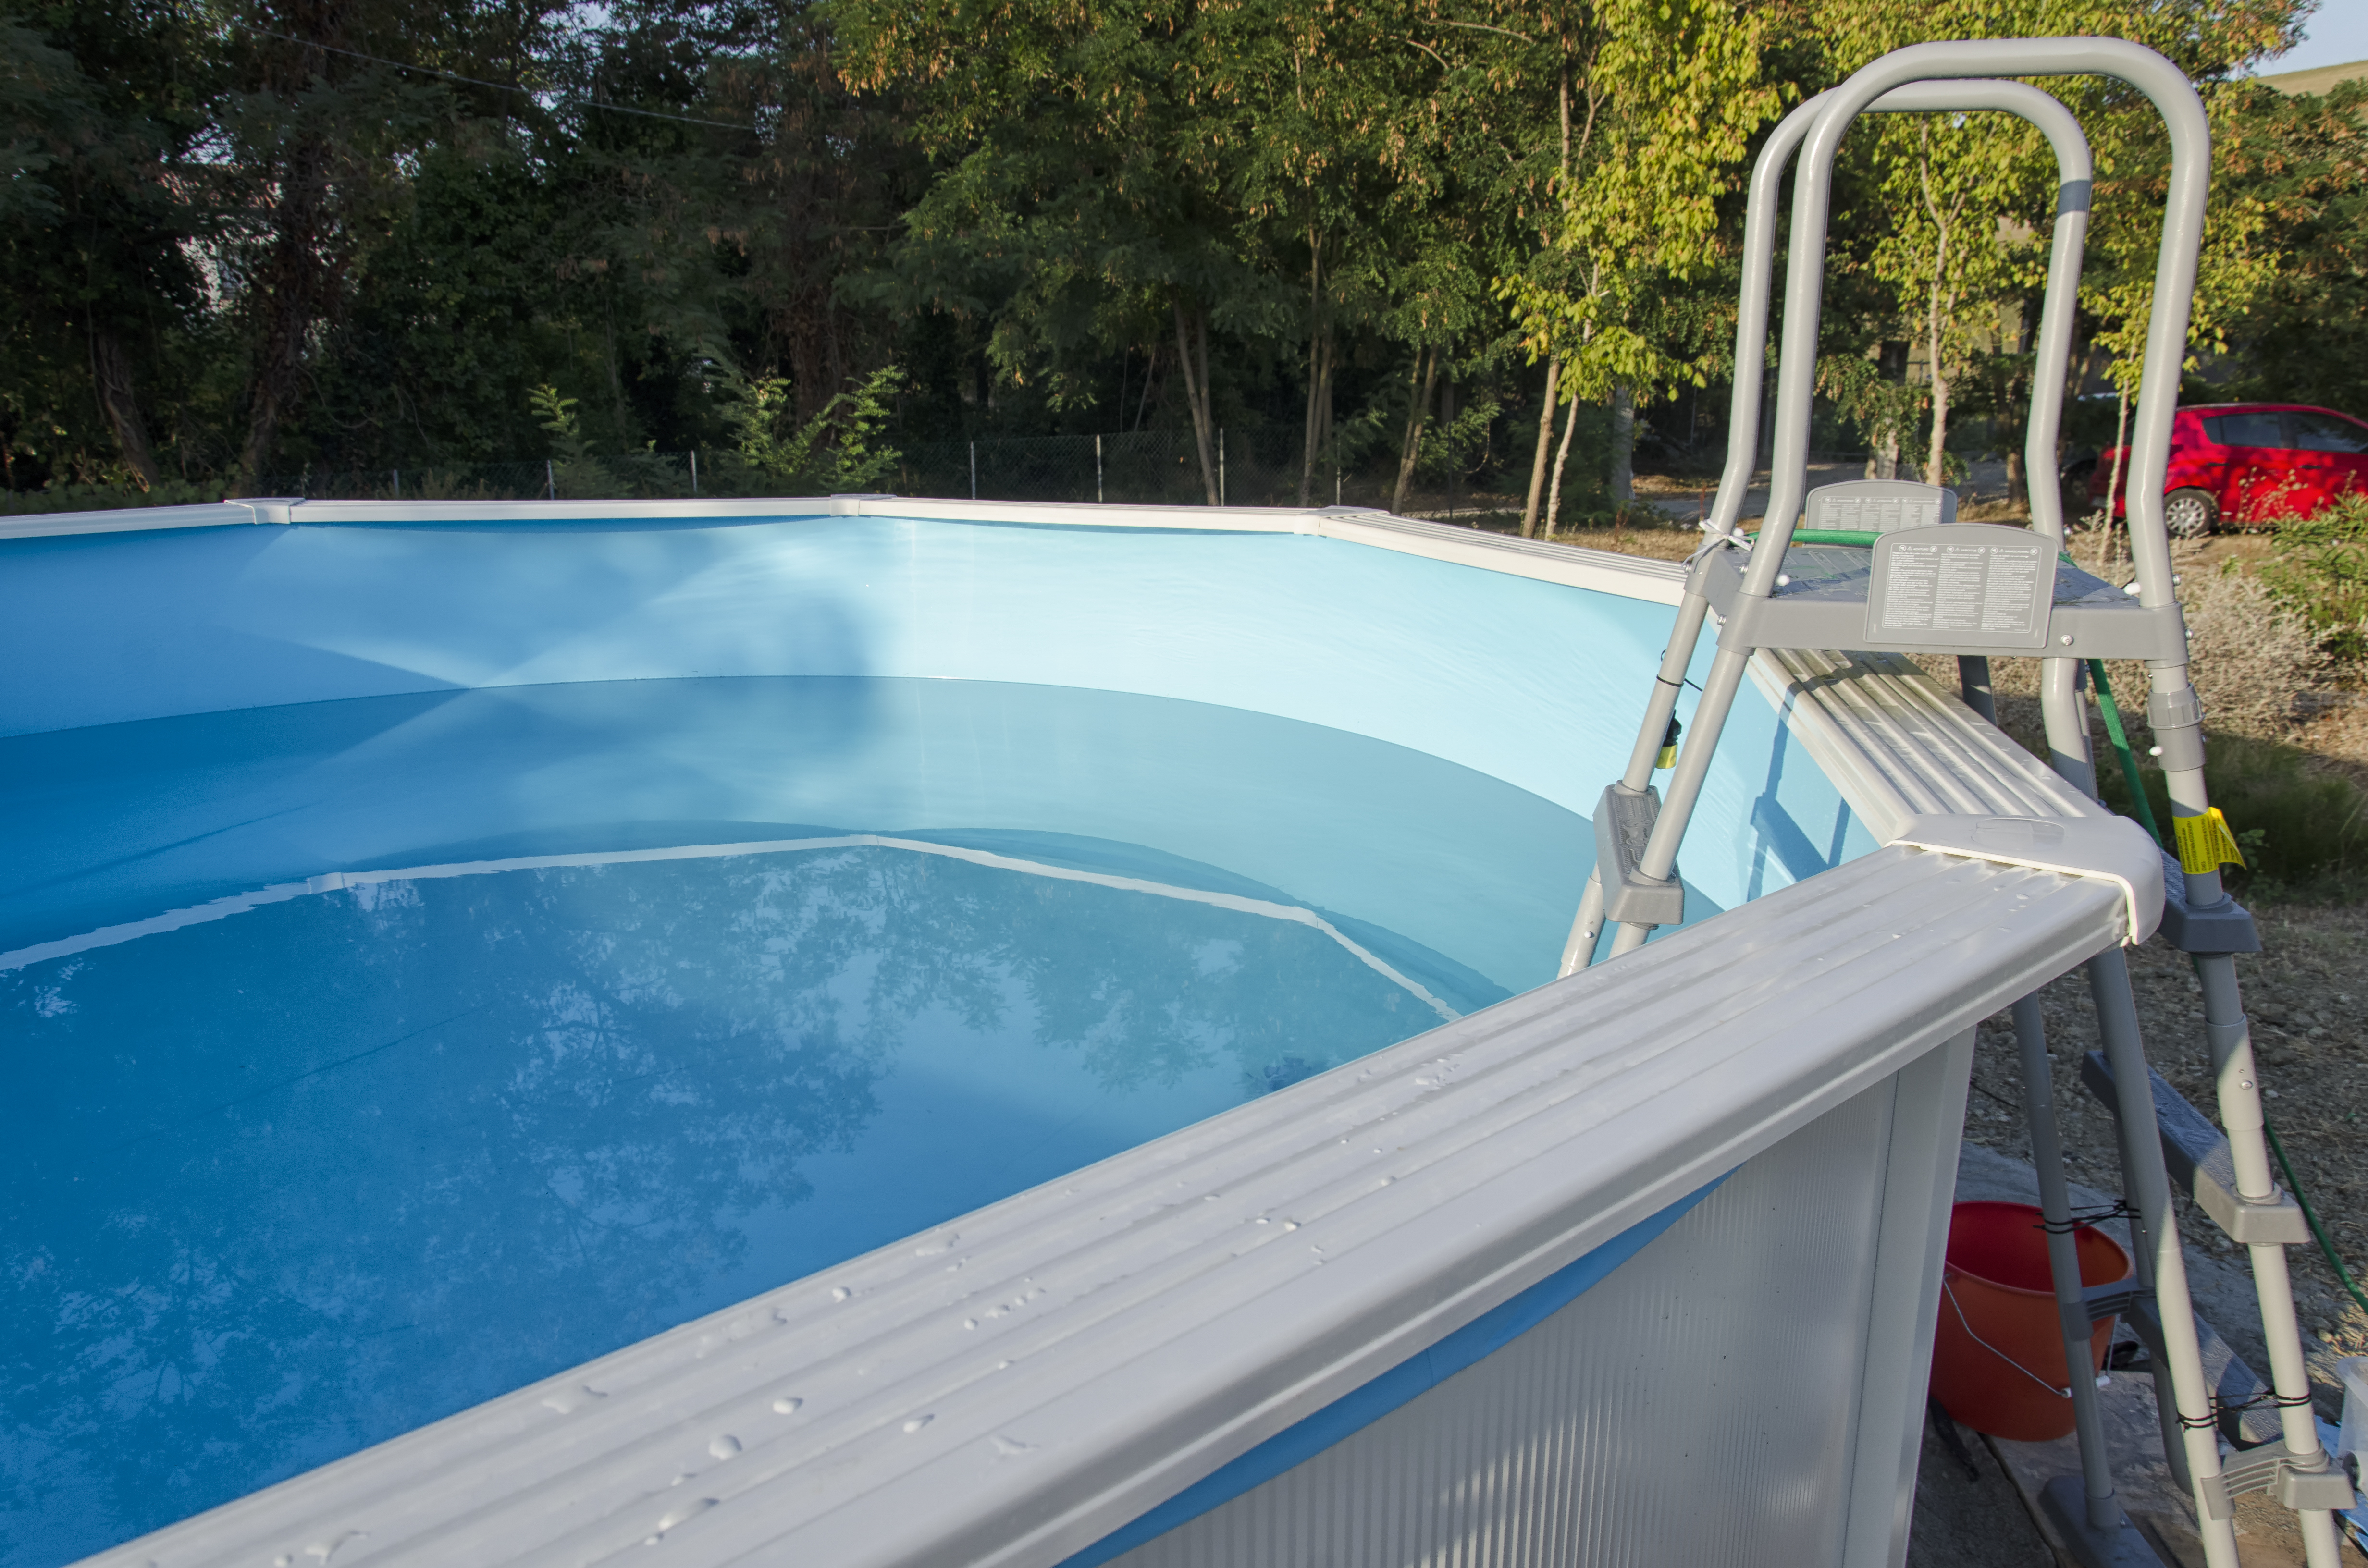 Pool Pumpenfilter Reinigen How Often To Backwash An Above Ground Pool Home Guides